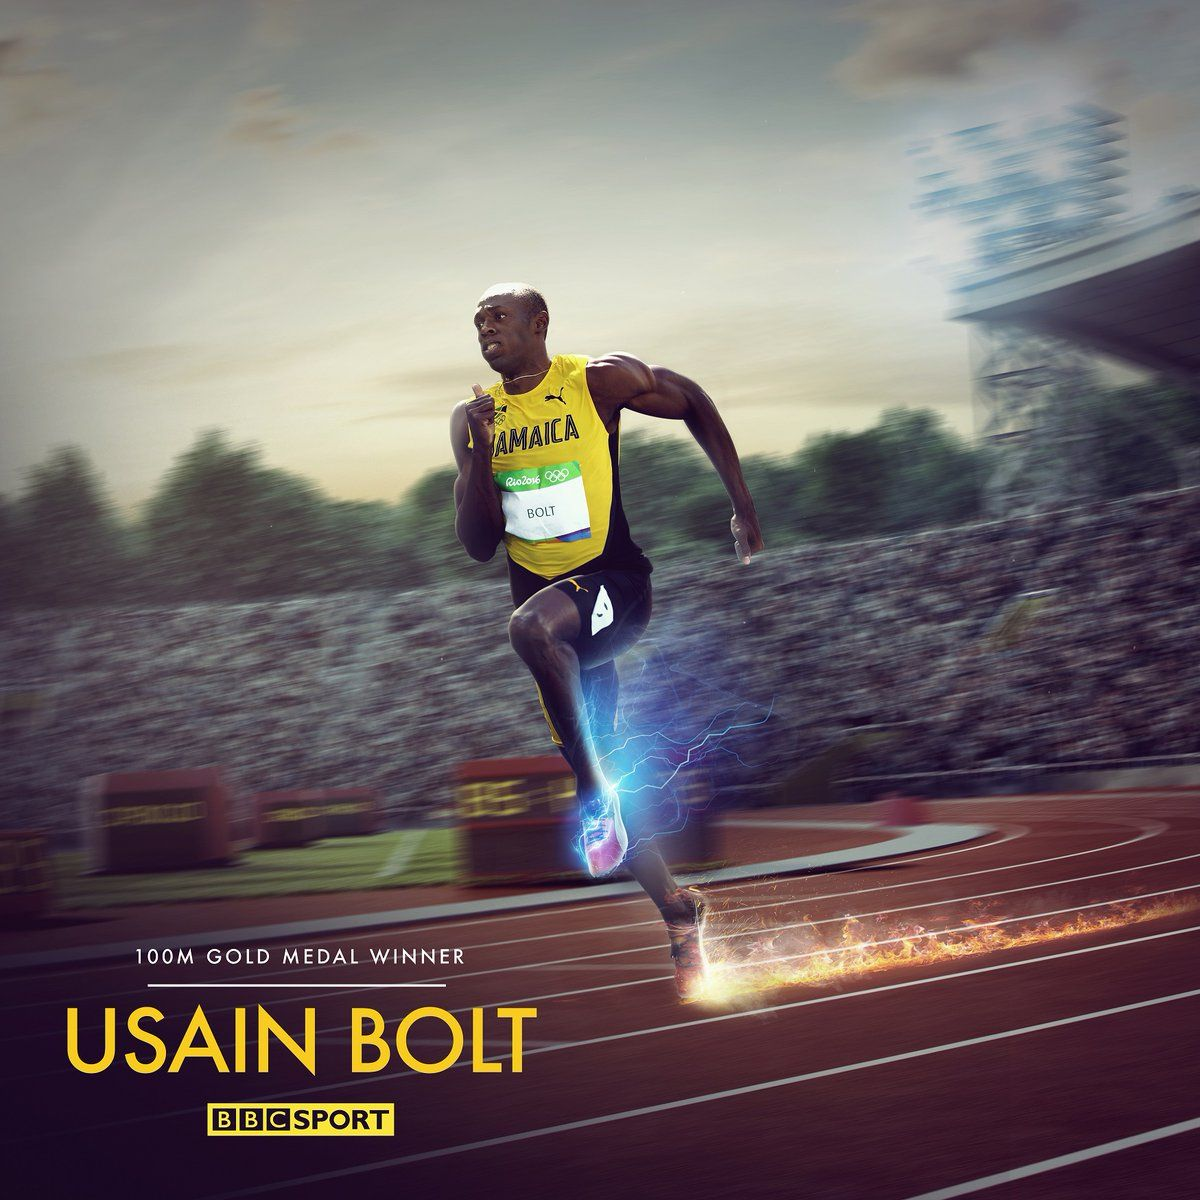 Usain Bolt The 1st athlete to win three Olympic 100m